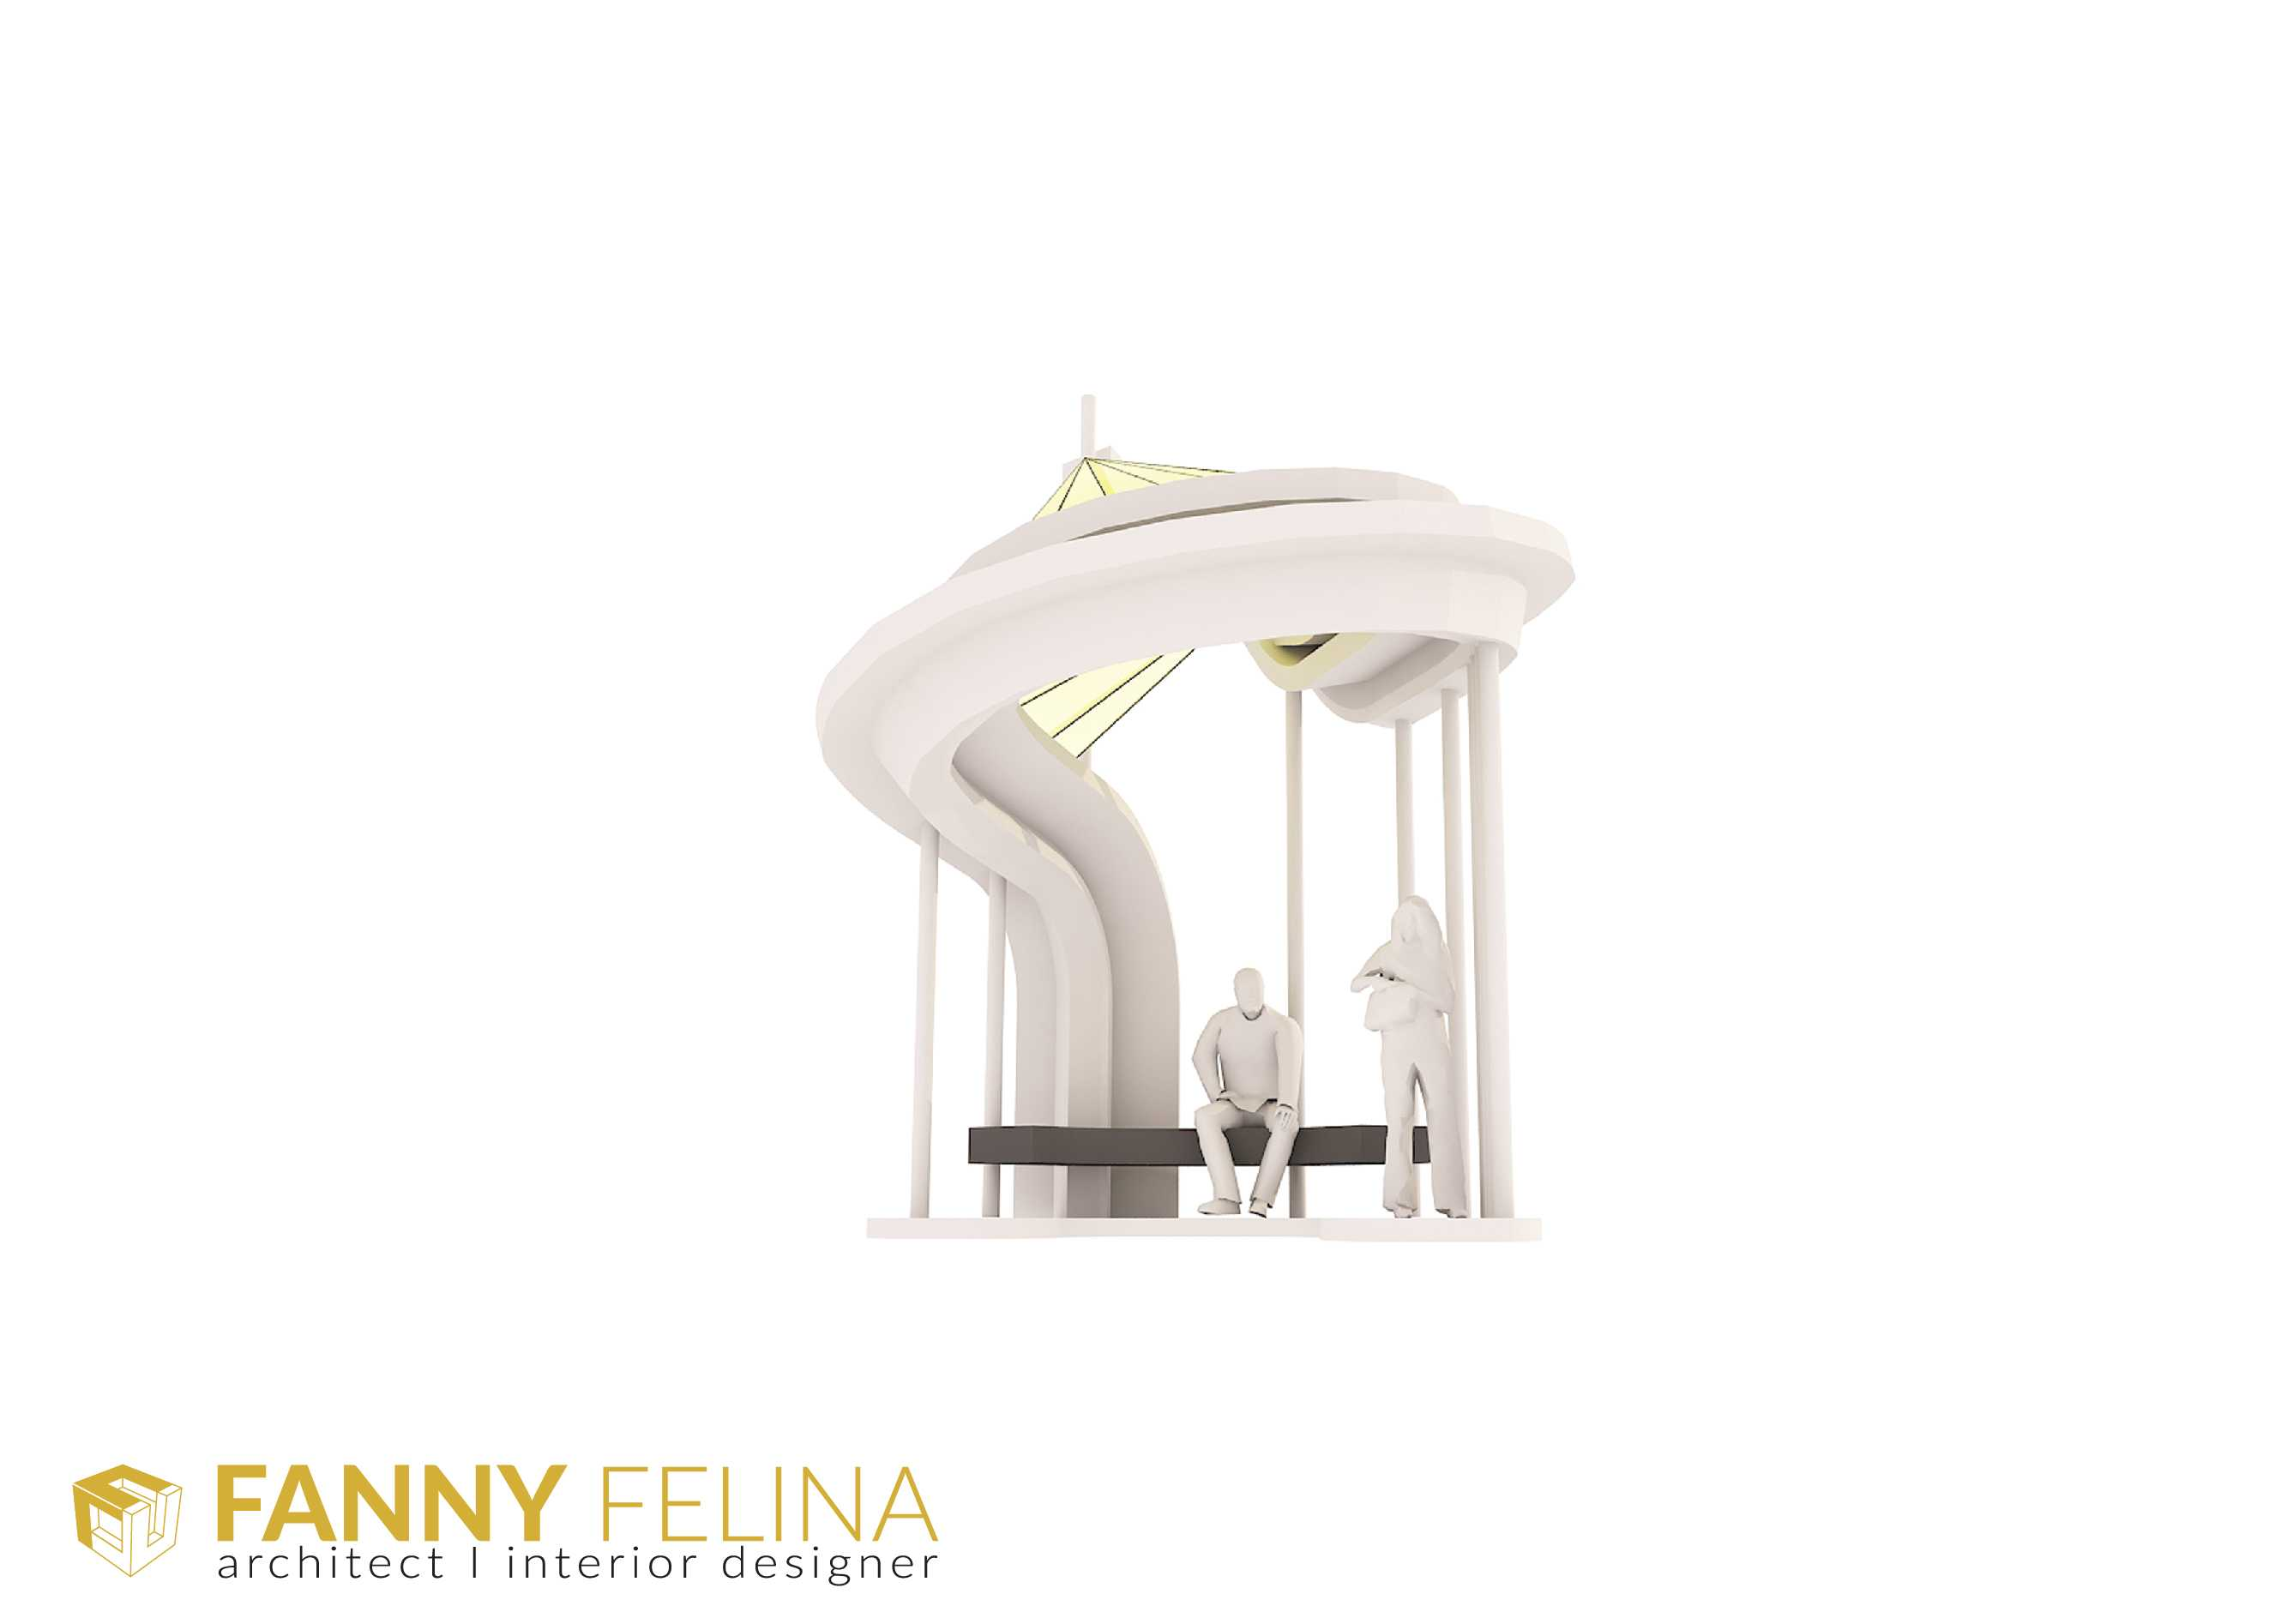 Fanny Felina Architecture & Interior Design P Shelter Surabaya, Surabaya City, East Java, Indonesia Surabaya, Surabaya City, East Java, Indonesia 02 Kontemporer,modern  35316